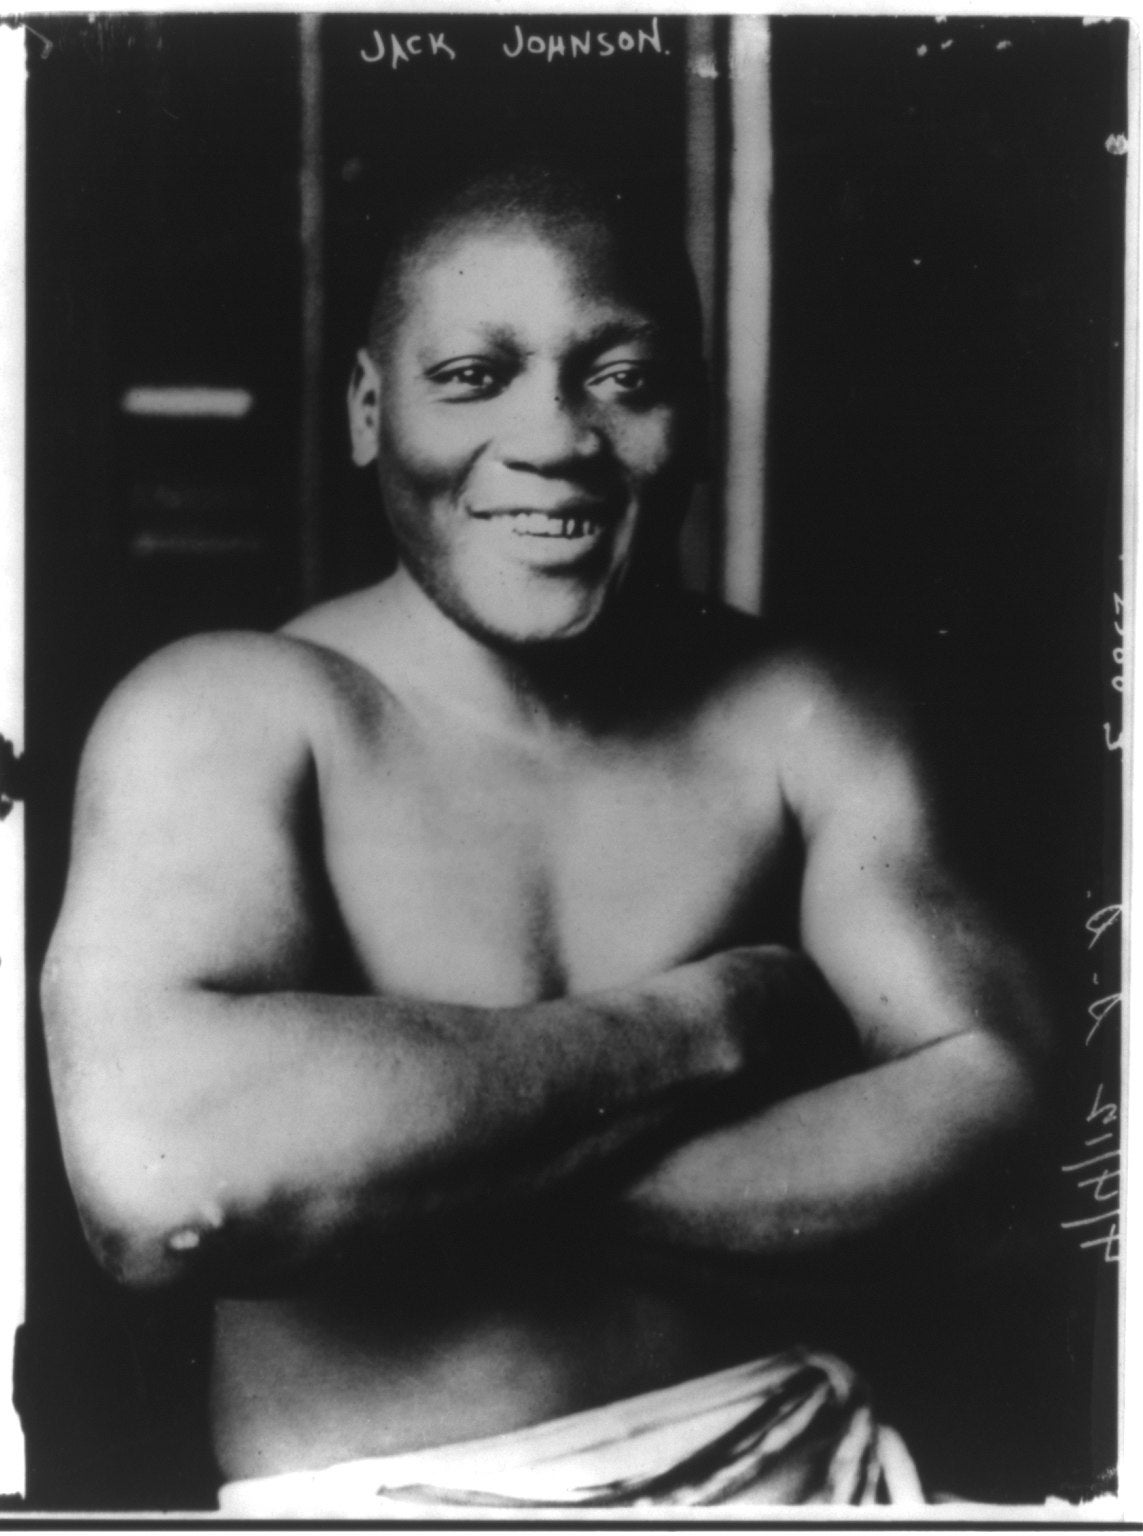 Jack Johnson is seen in this image from 1915.